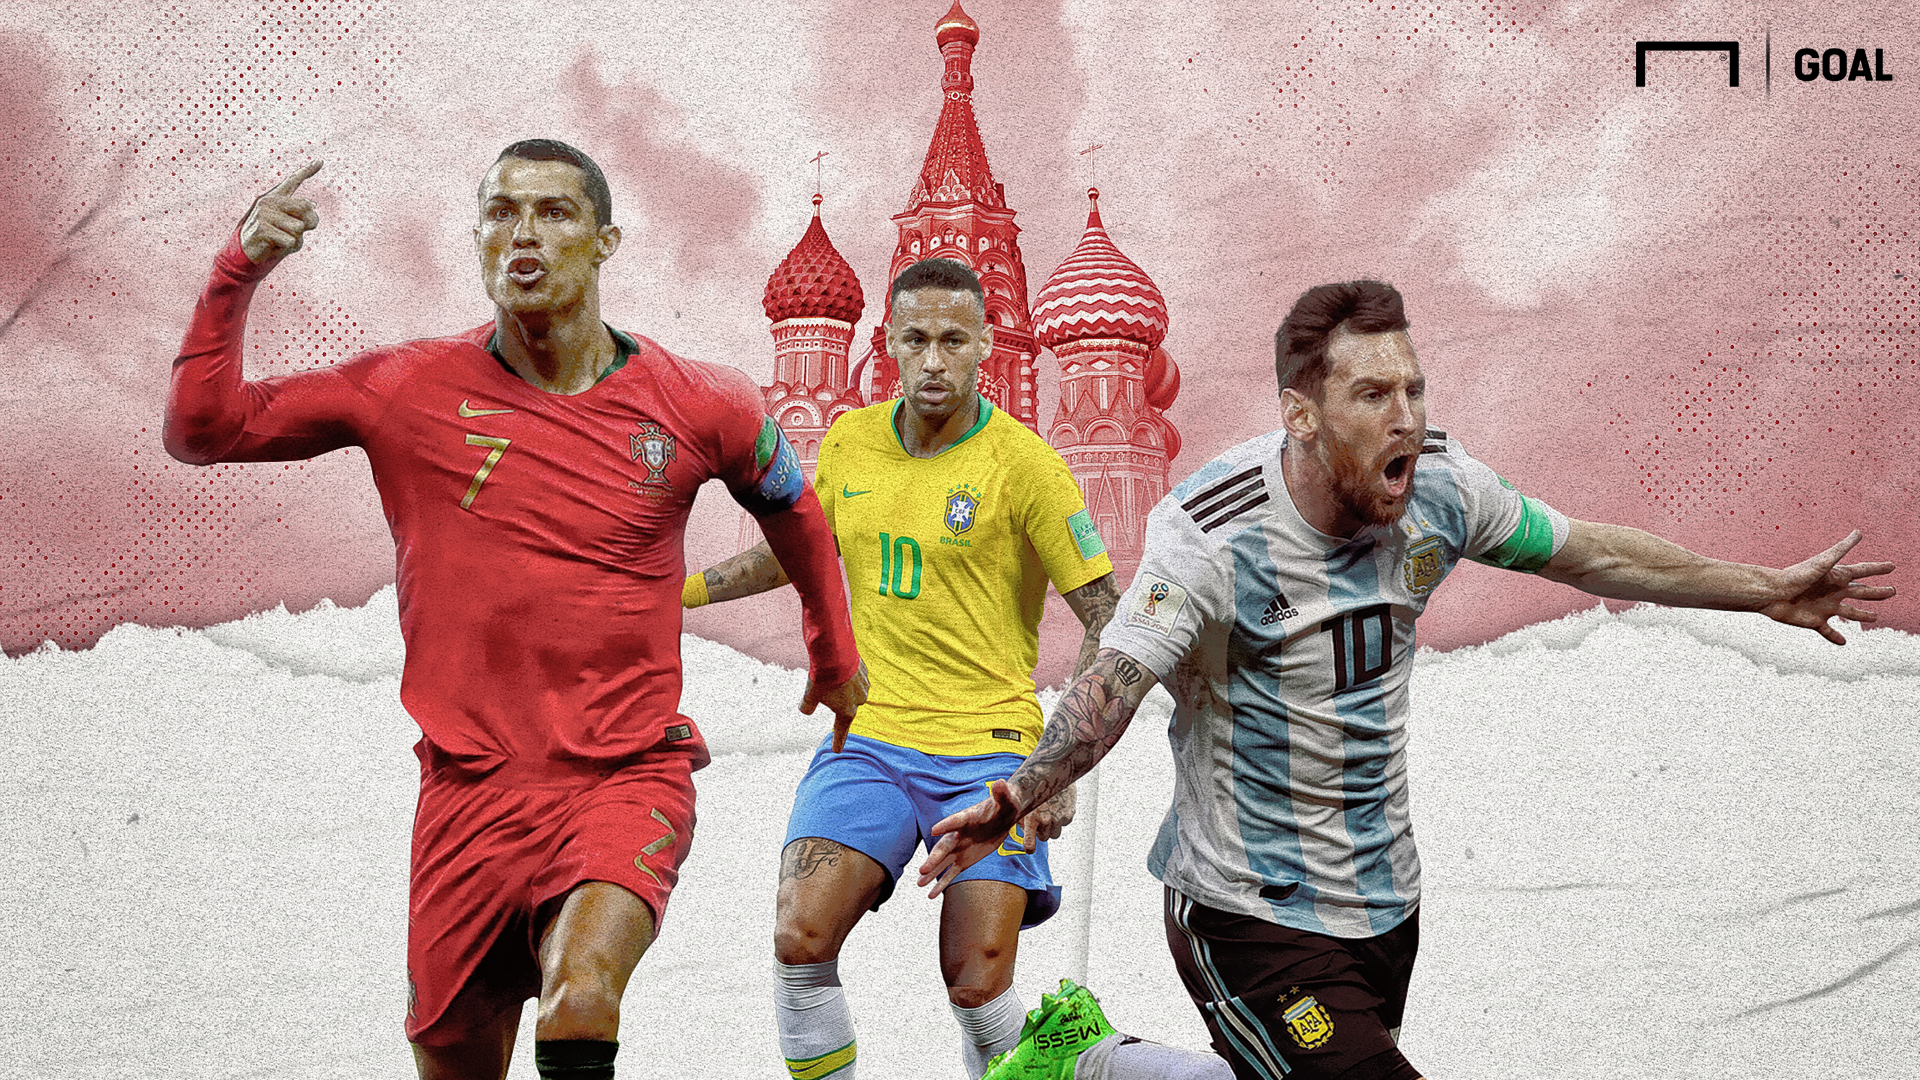 Messi Neymar Ronaldo Png - Perform Media data puts Ronaldo and Messi top for World Cup fan ...